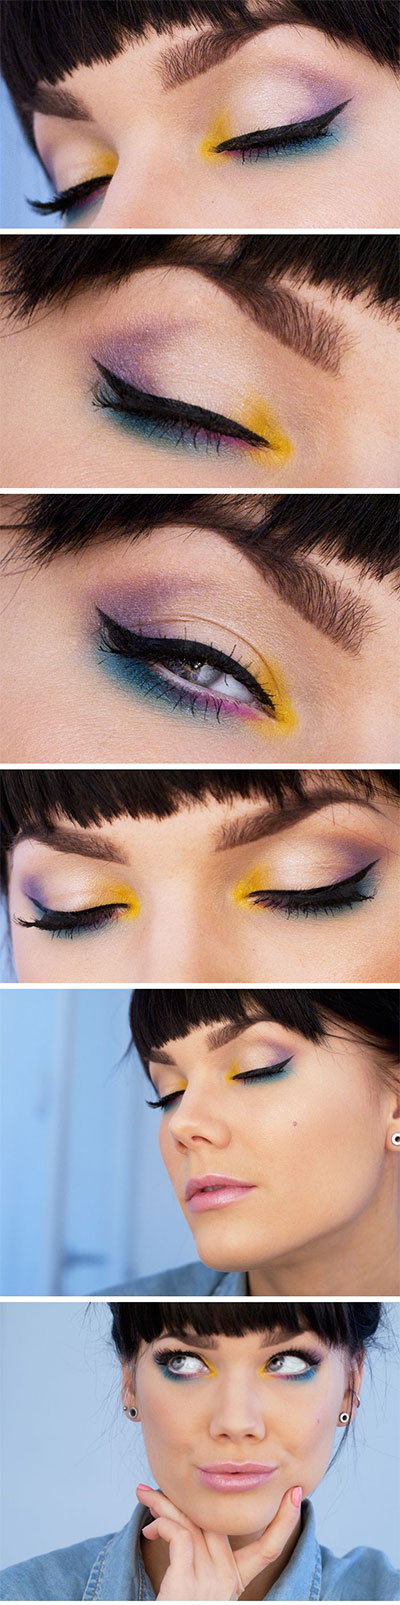 12-Inspiring-Spring-Eye-Makeup-Looks-Ideas-Trends-2015-For-Girls-12